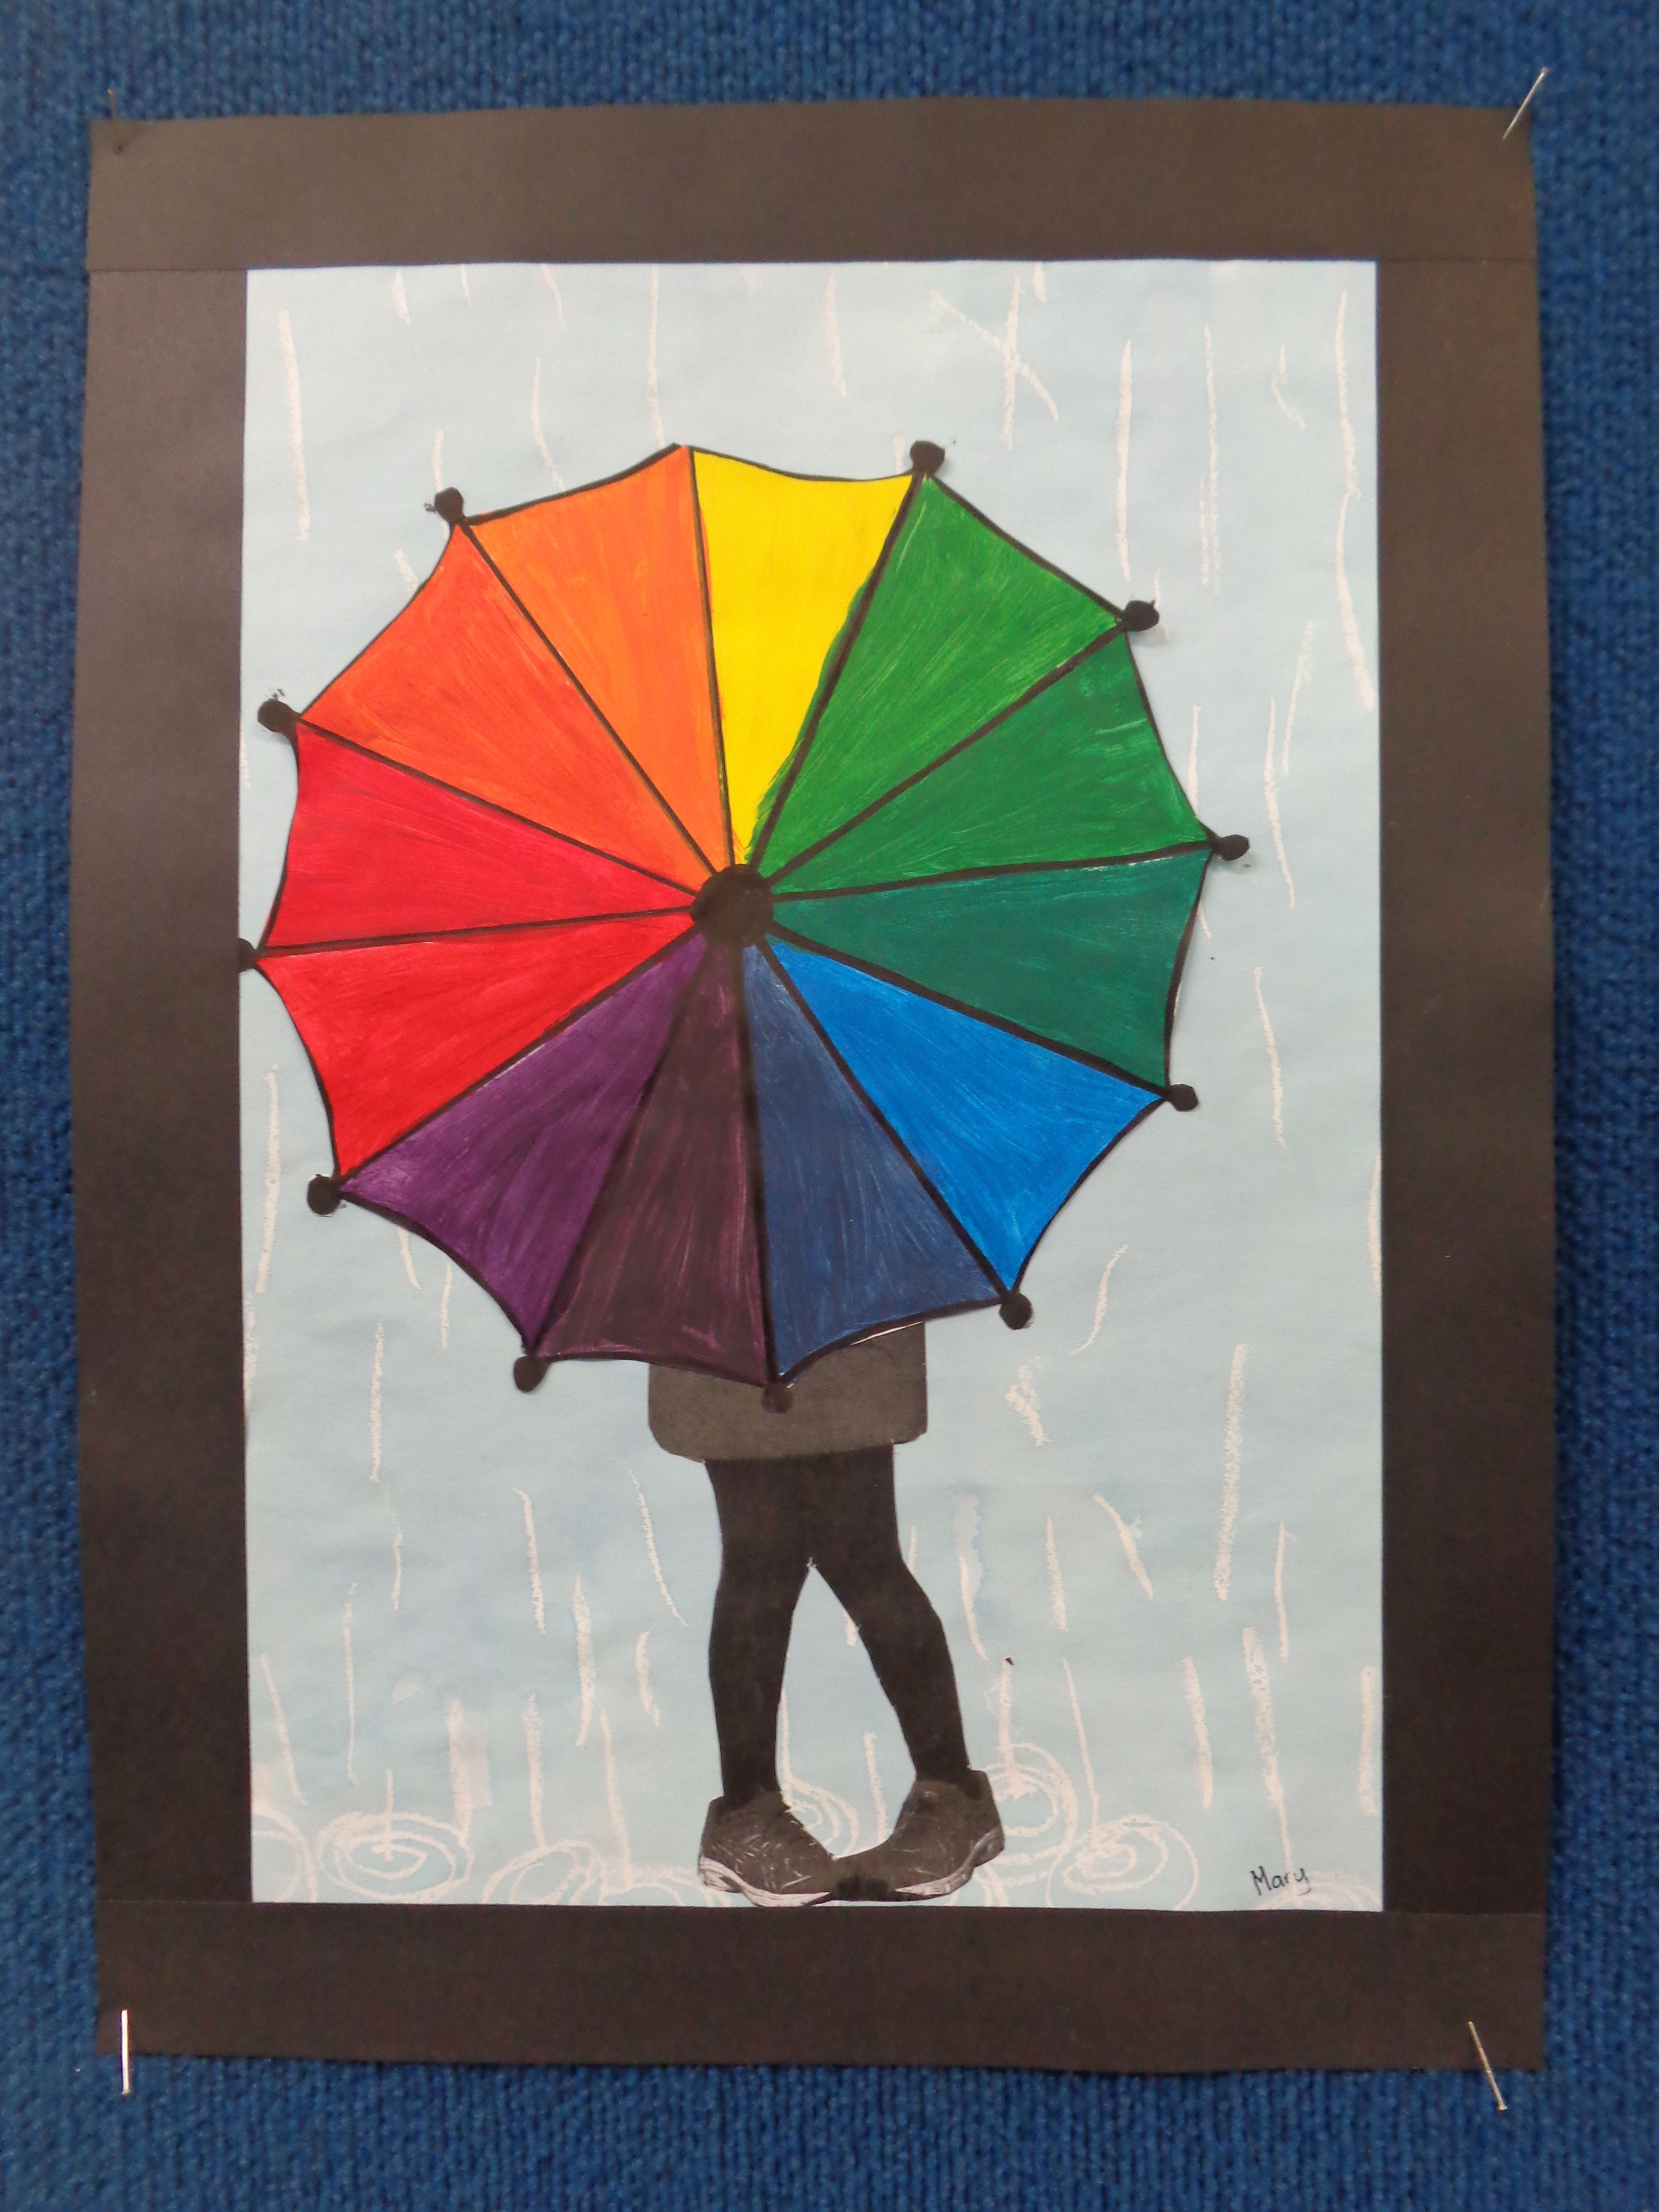 The Joy Of Winter Exploring The Colour Wheel Year 4 Color Wheel Art Color Wheel Art Projects Elements Of Art Color